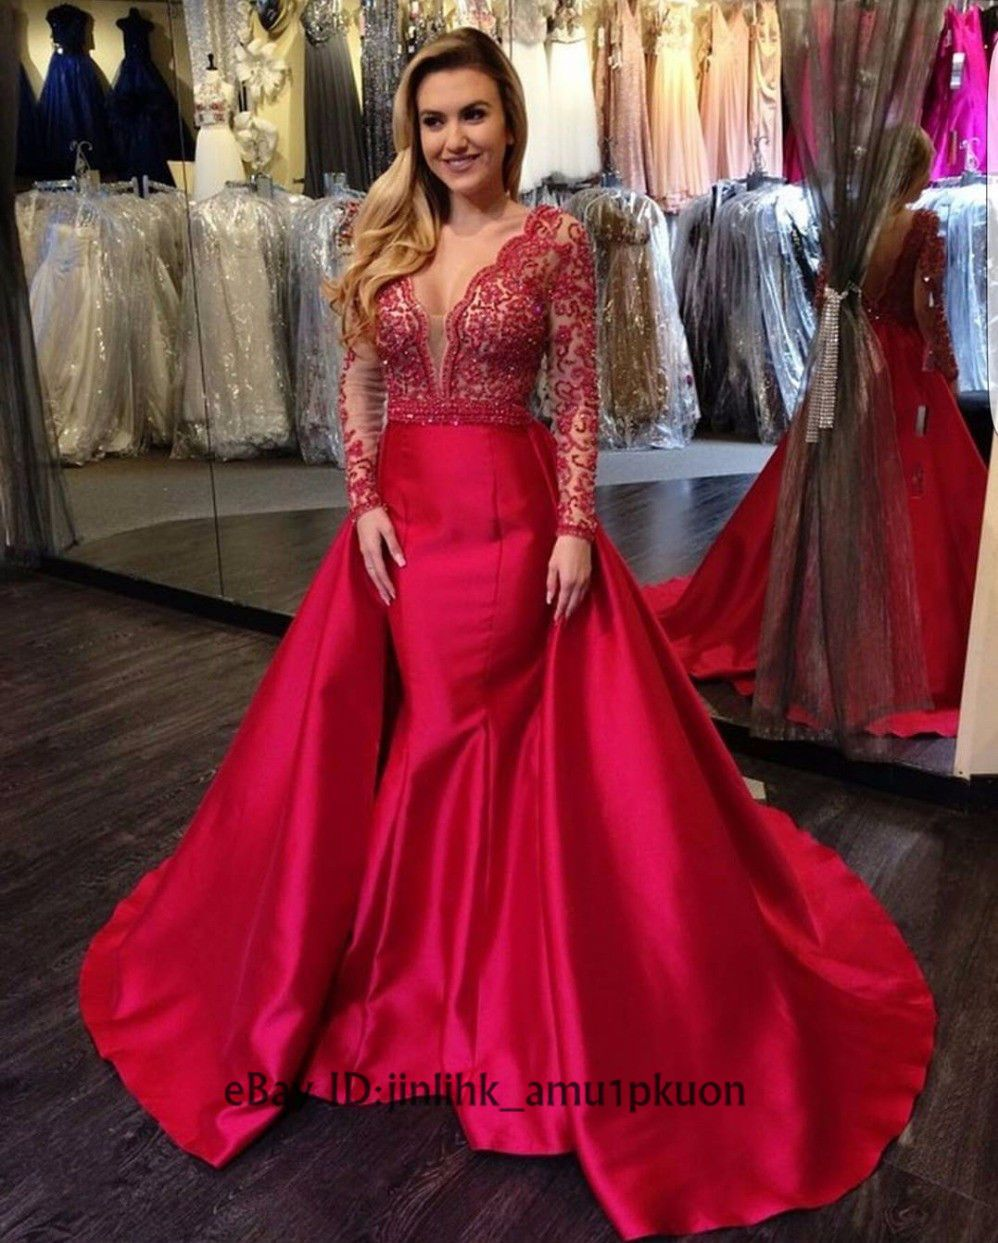 Cool 2017 Red Party Evening Mermaid Dresses Long Sleeve Lace ...